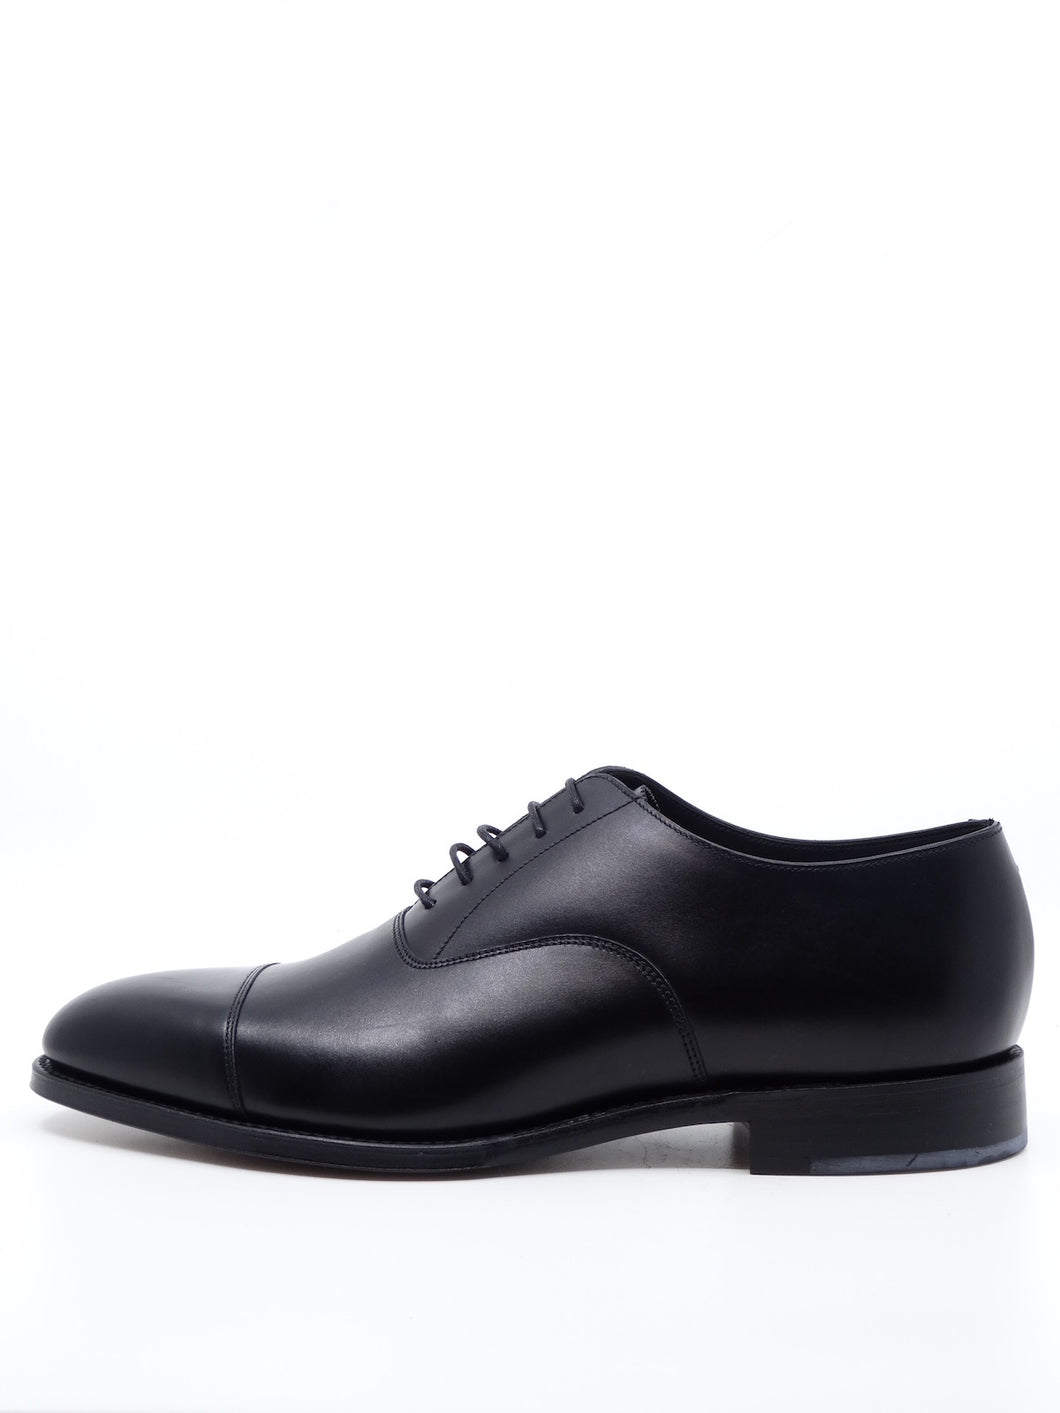 Loakes Aldwych Black Leather